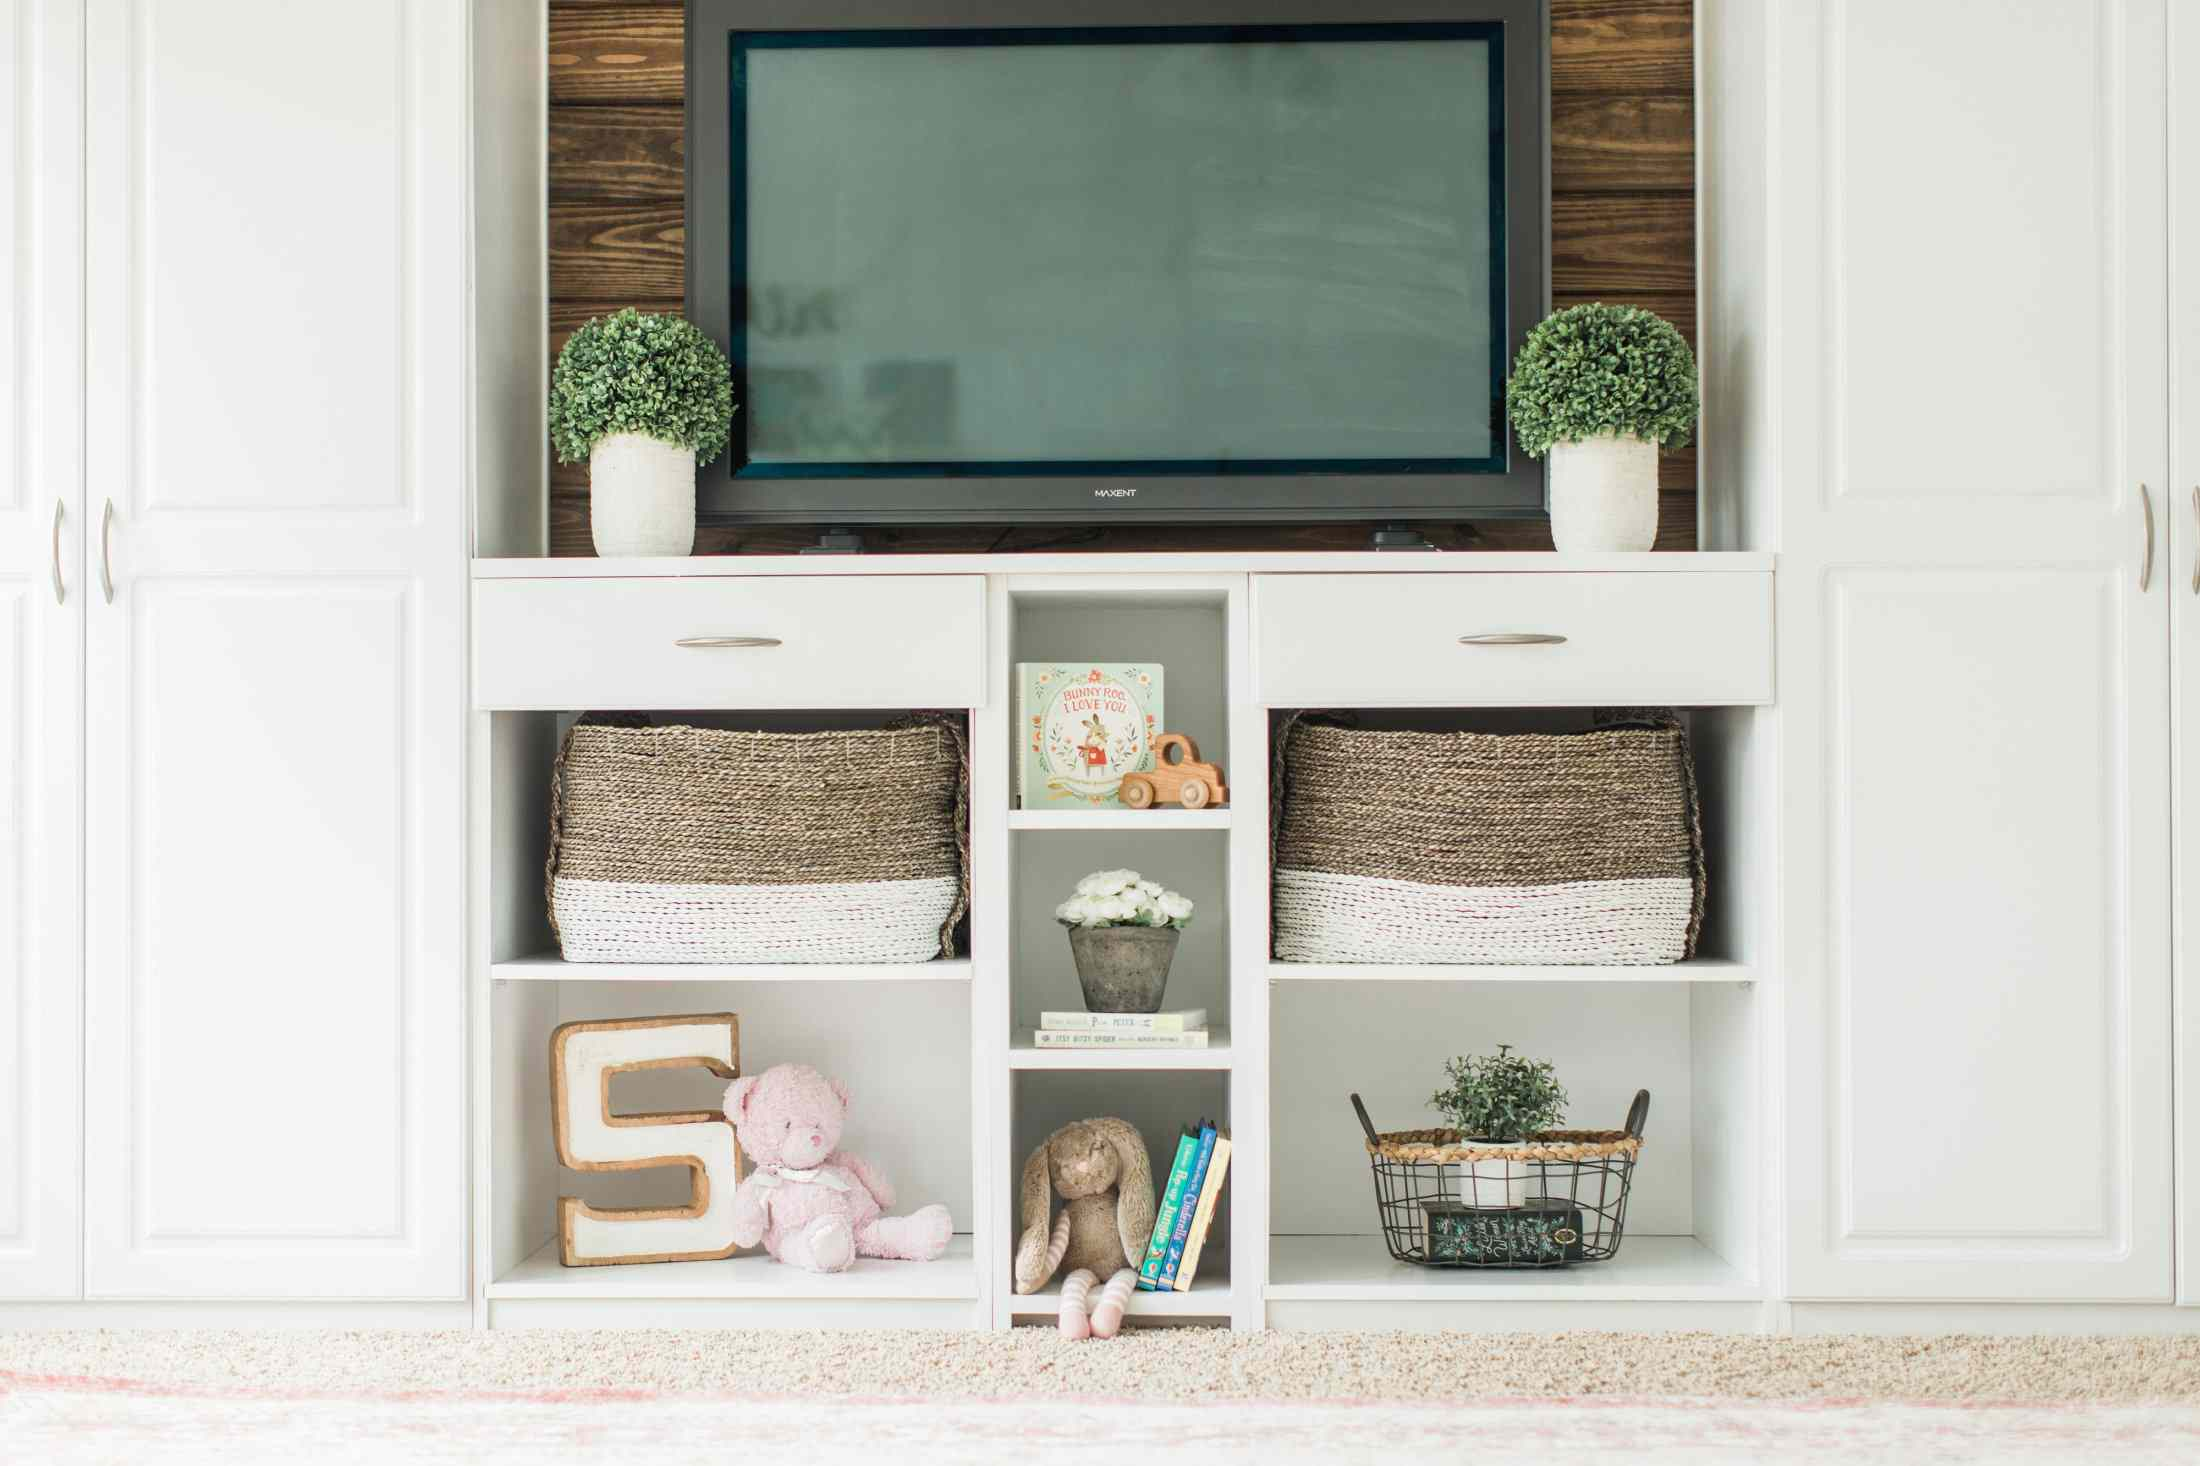 White play room with shelves